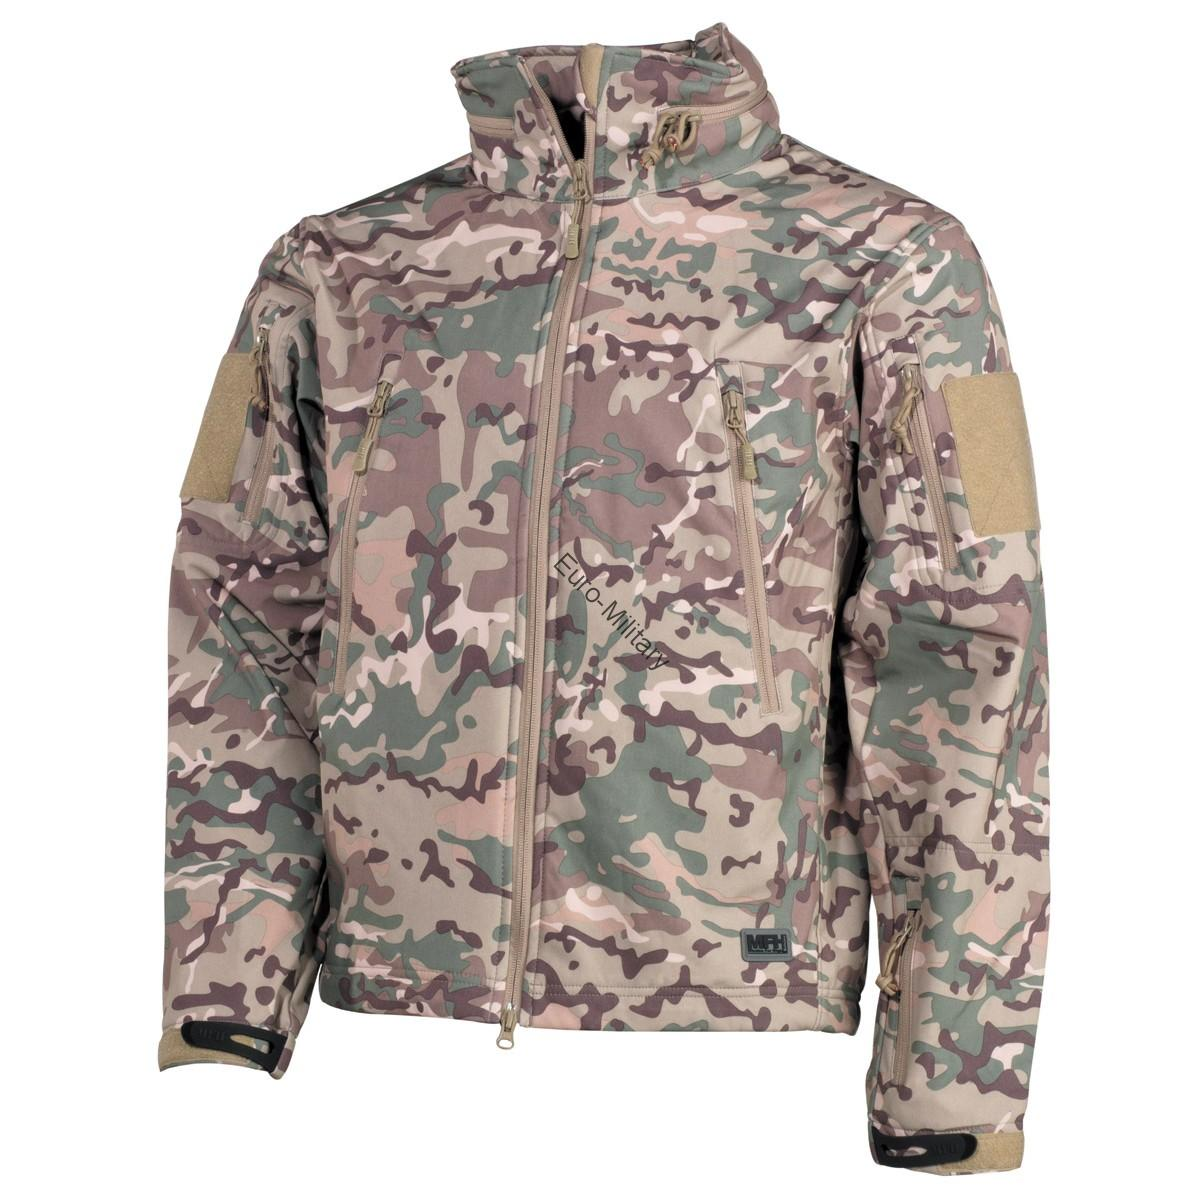 Premium High Defense Tactical Waterproof Soft Shell Jacket SCORPION - Multicam